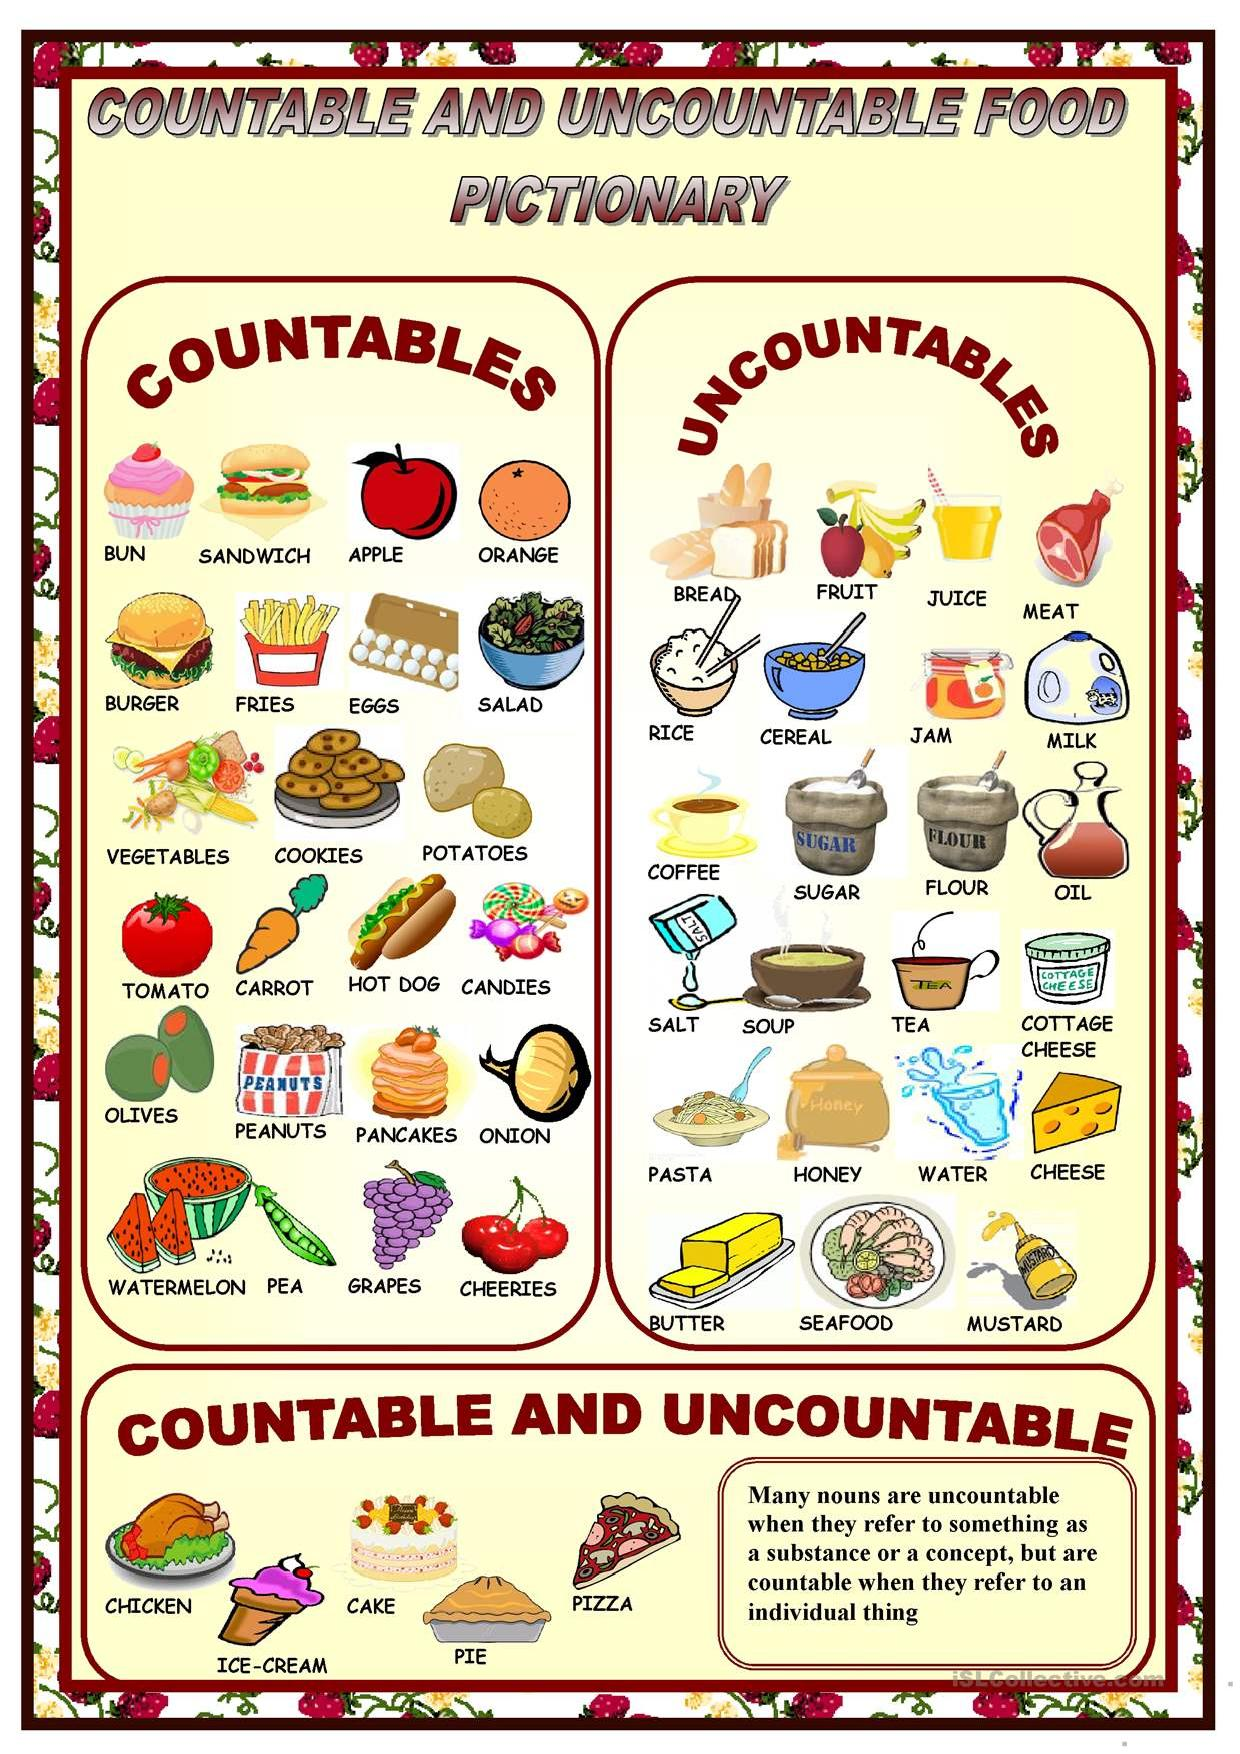 Countable And Uncountable Stories To Read